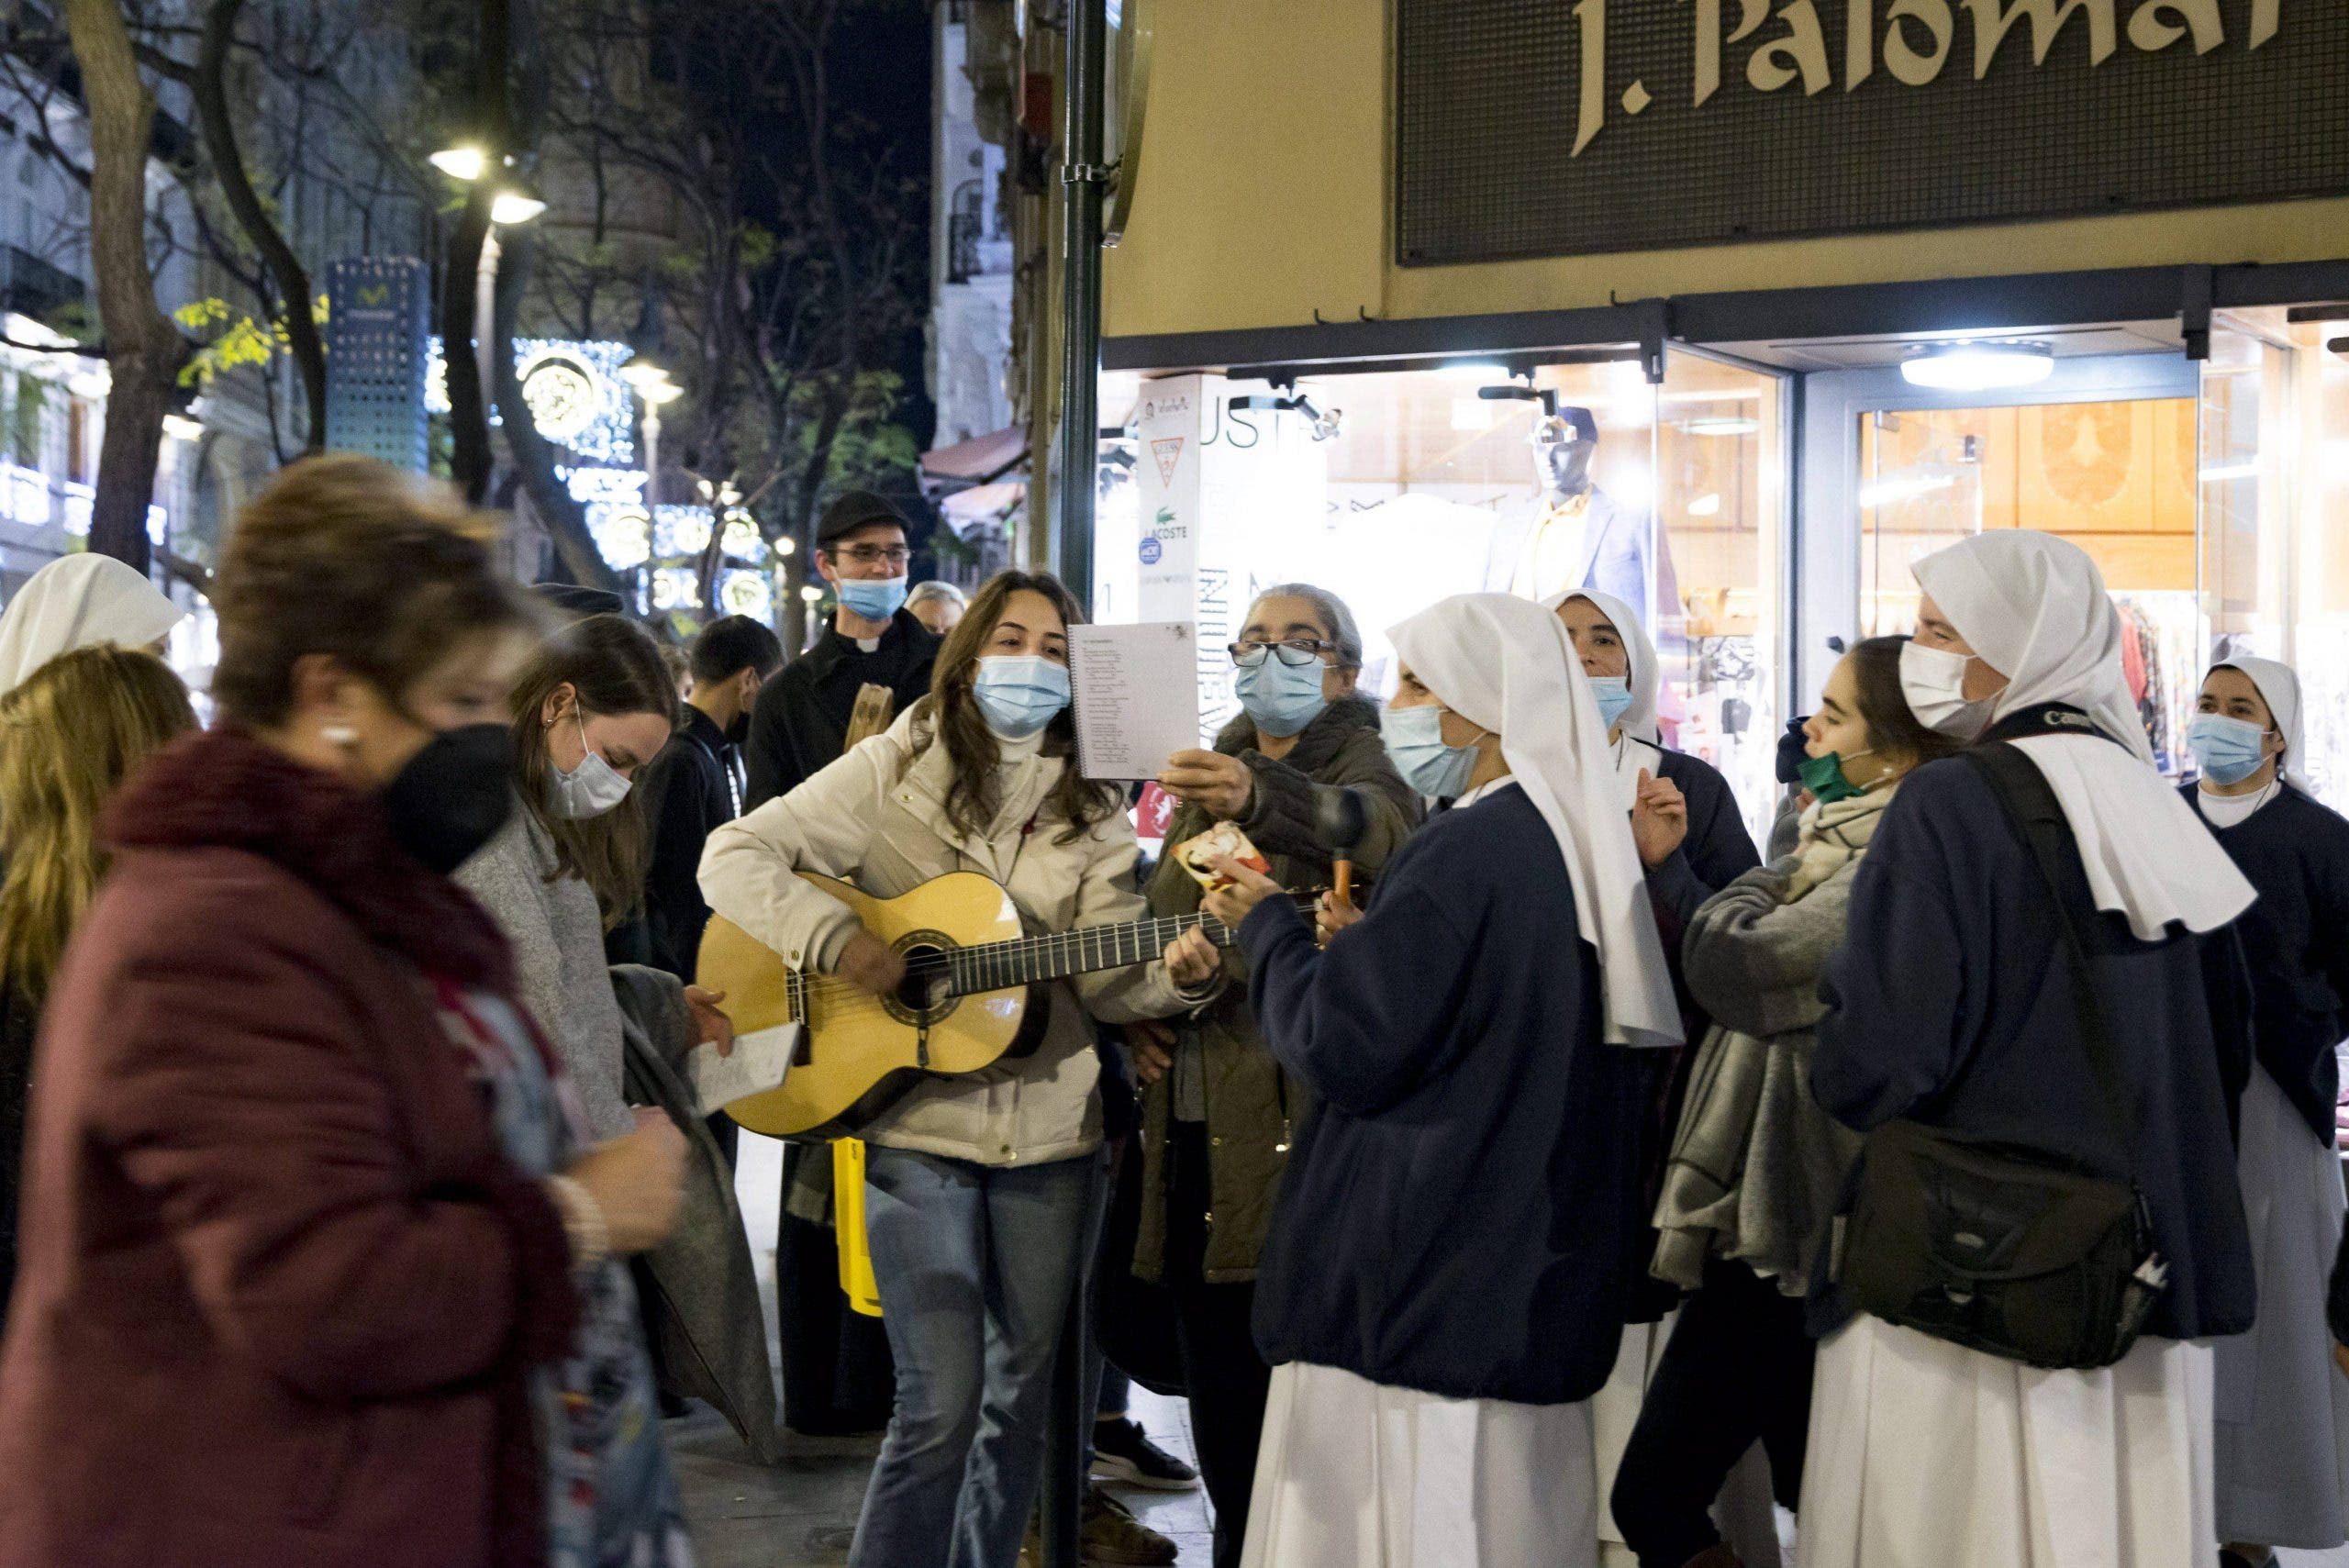 A group of nuns singing carols in Valencia over Christmas